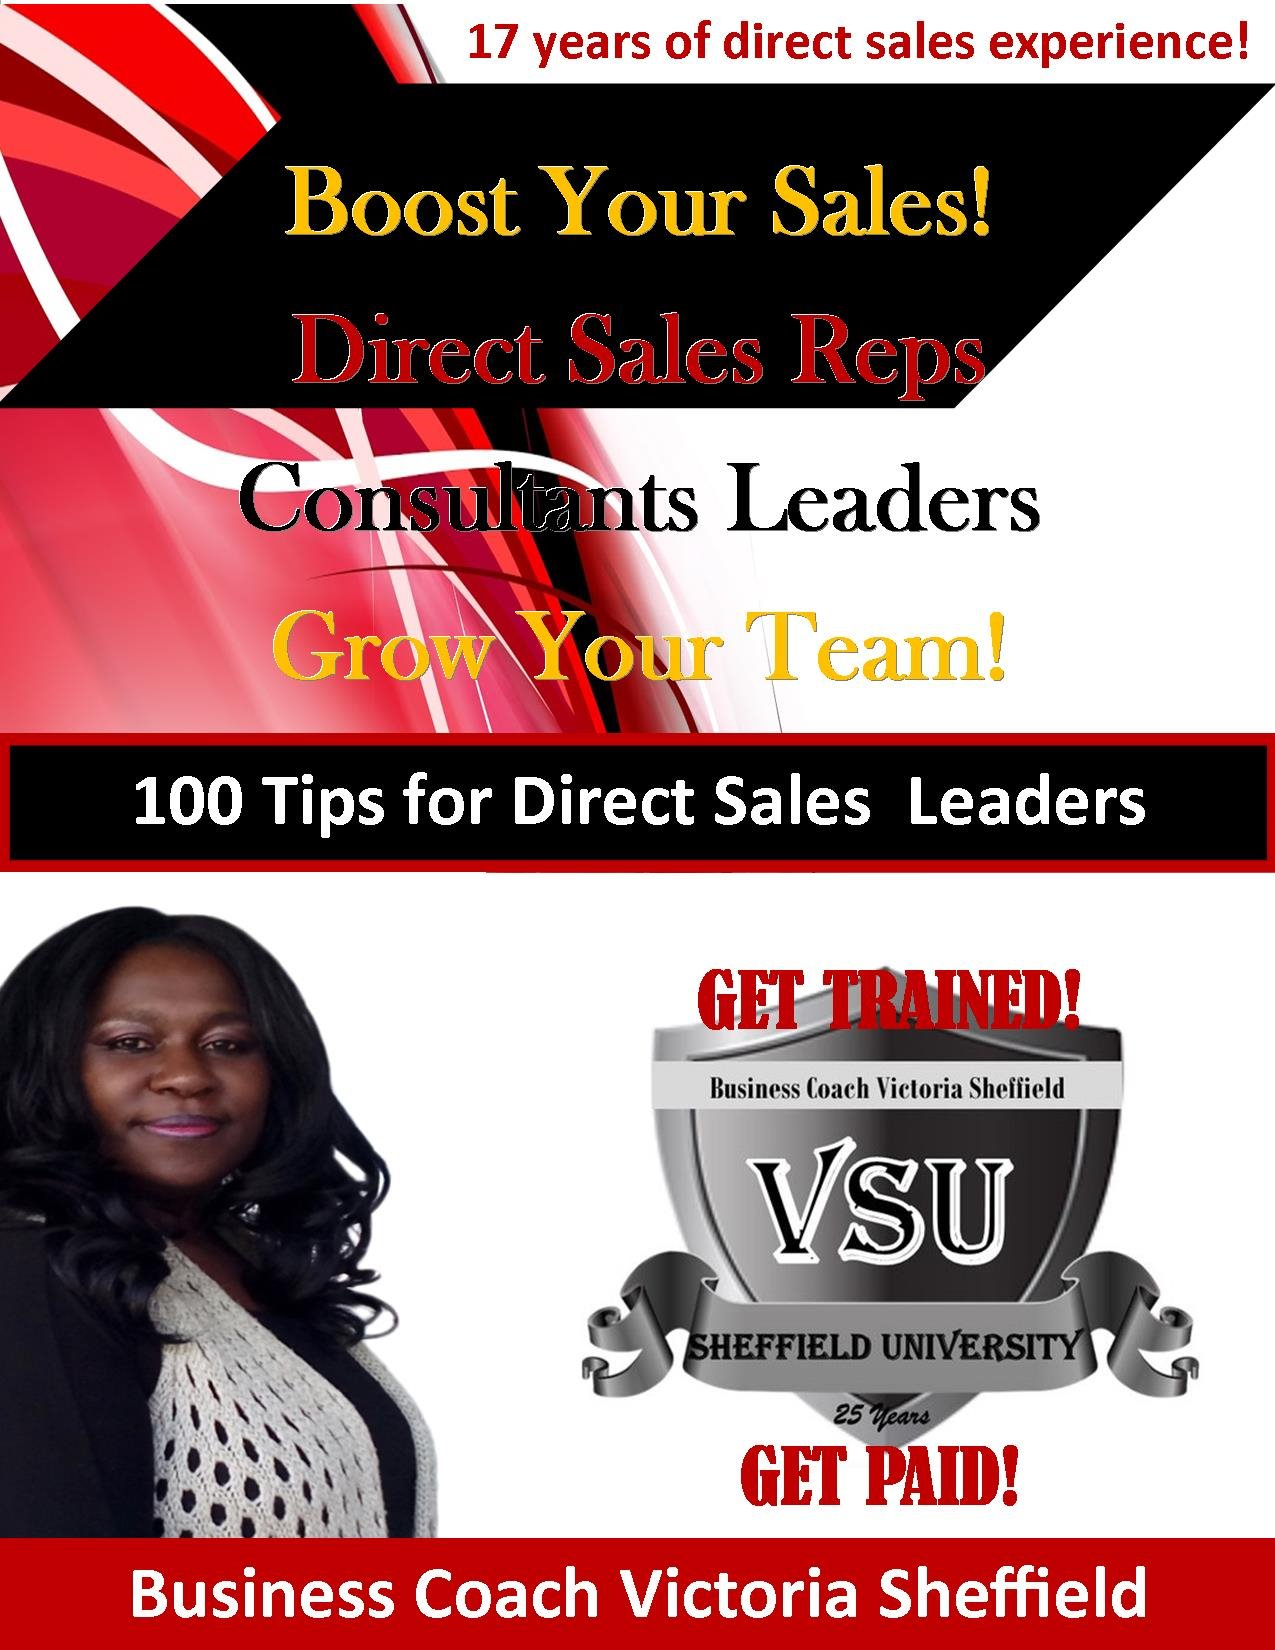 100 Tips for Direct Sales Leaders